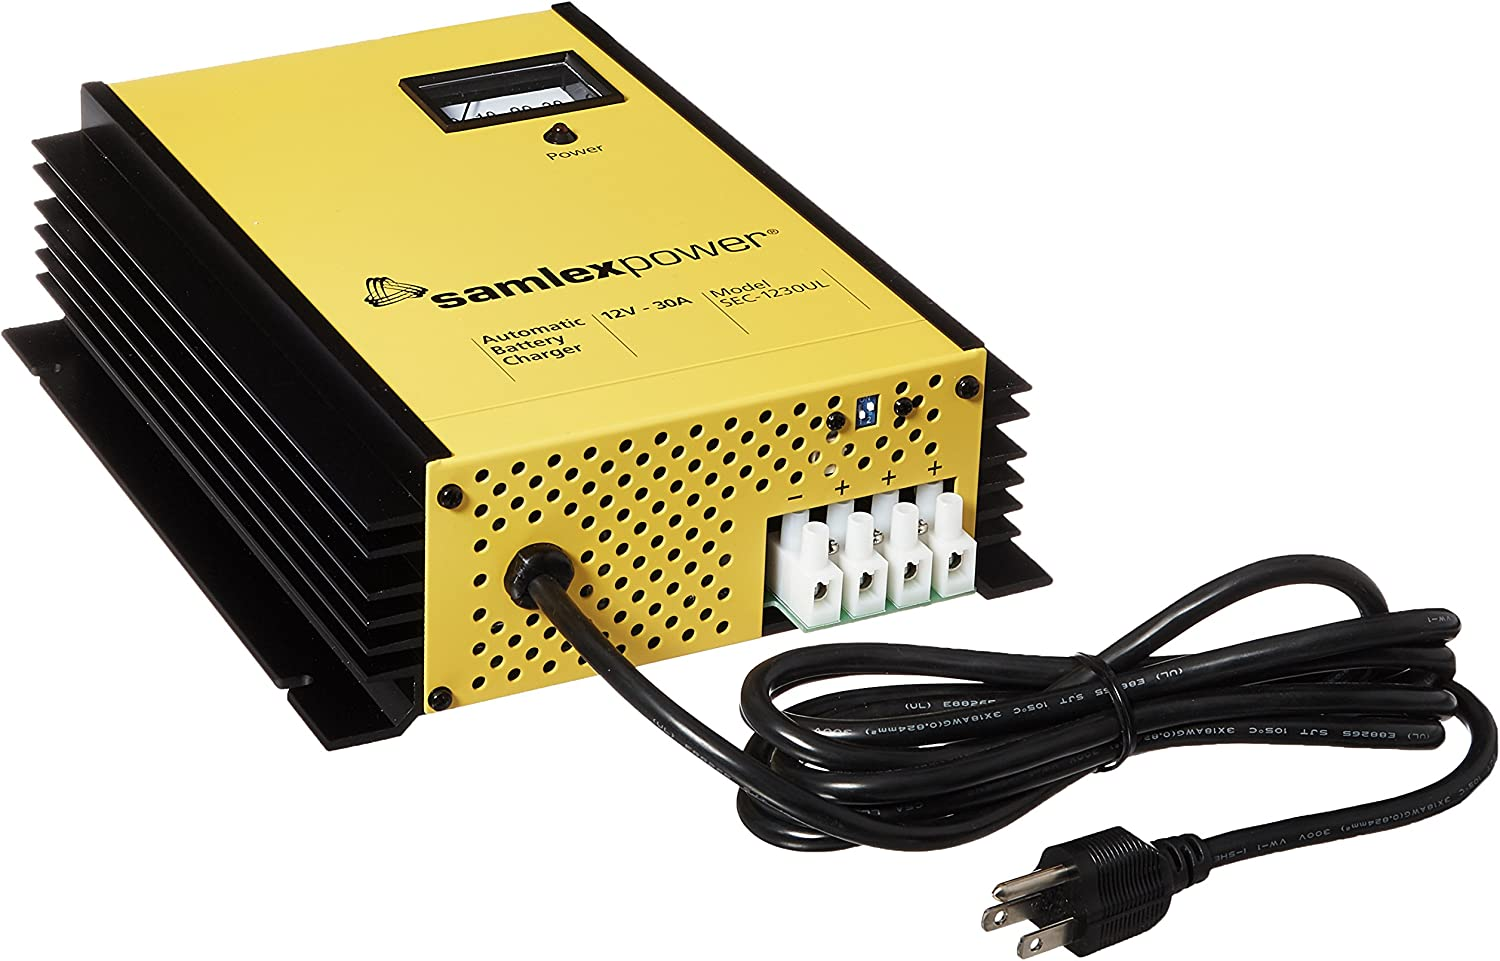 Samlex Solar SEC-1230UL SEC-UL Series 12V Battery Charger